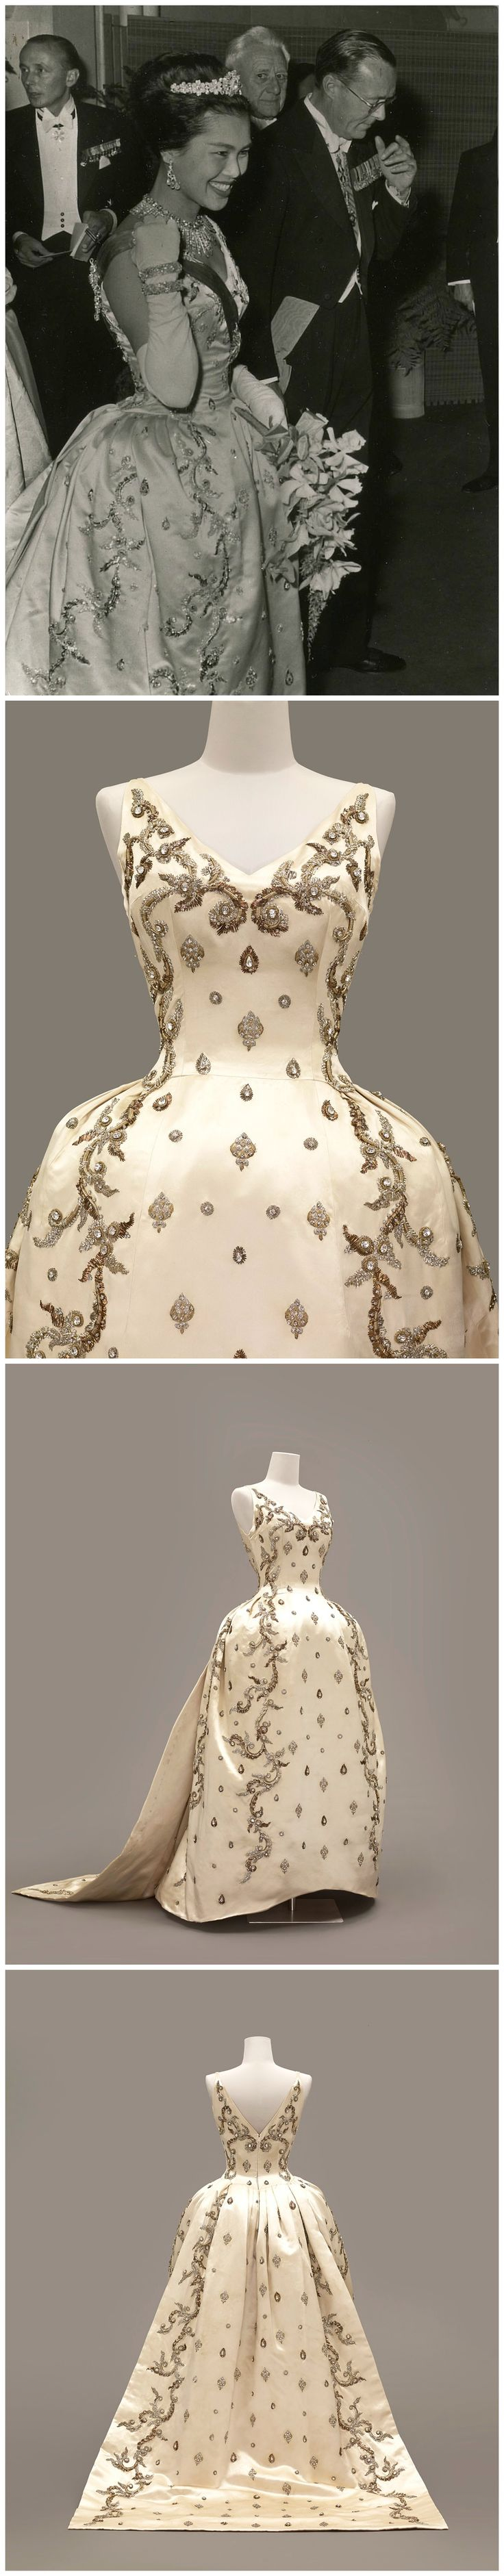 Evening dress, by Balmain, spring 1960. Silk satin with metal and iridescent thread and crystal embroidery by House of Lesage. Worn by Queen Sirikit of Thailand. Collection of Queen Sirikit Museum of Textiles.